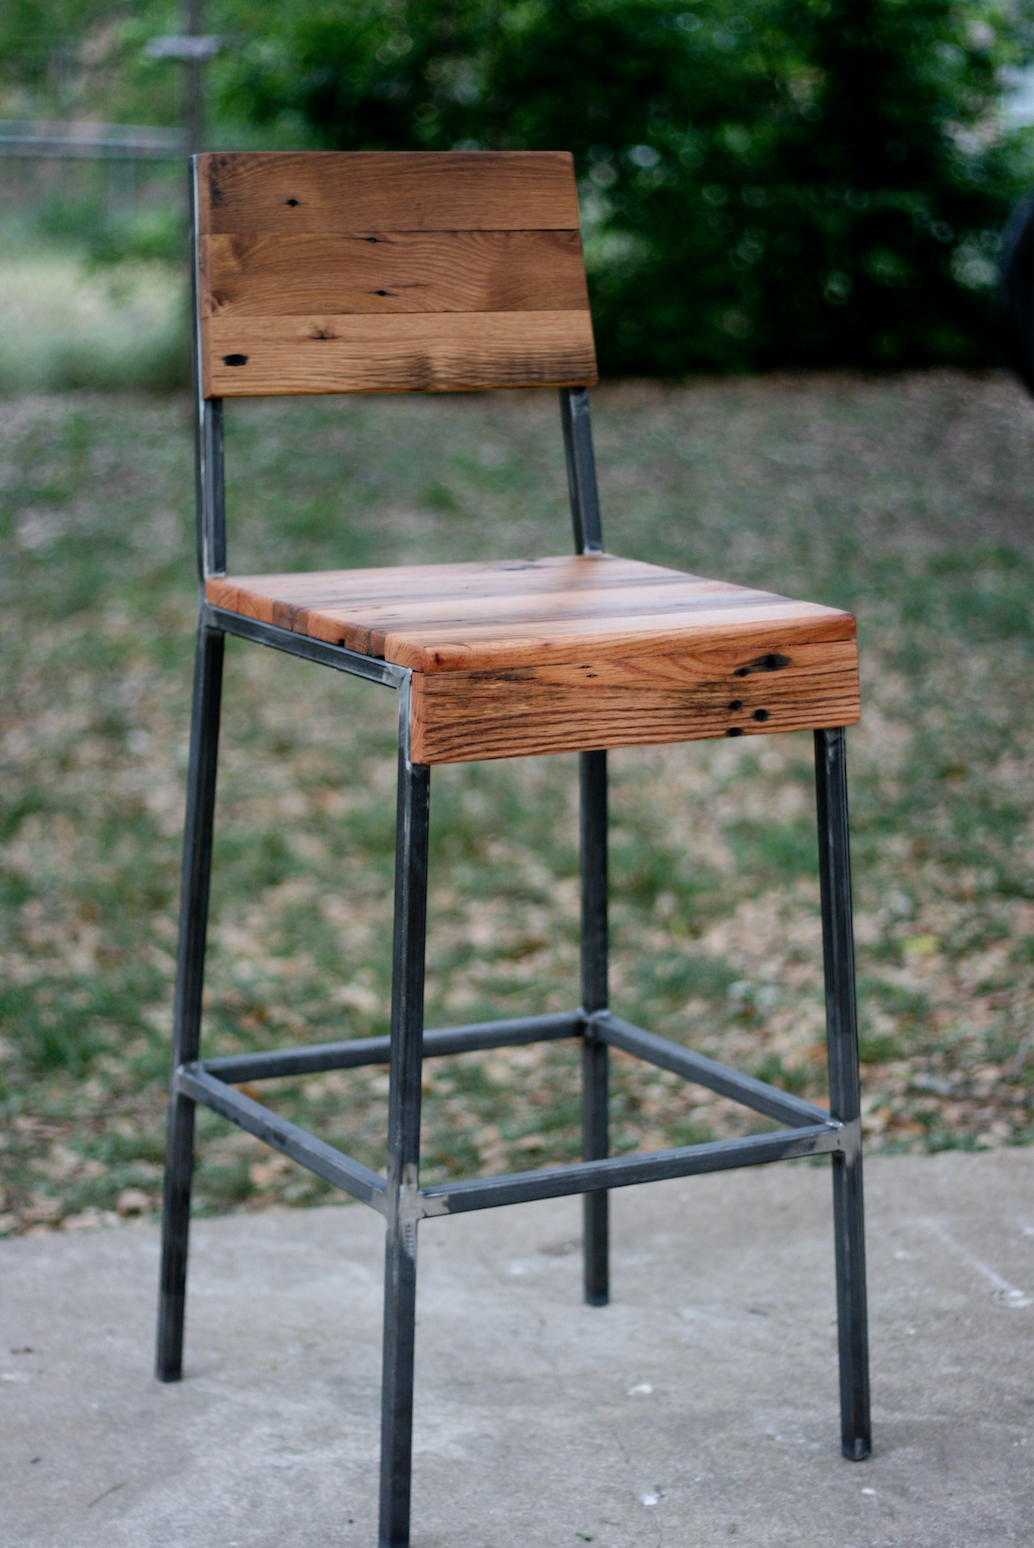 HIGH-BACKED PECAN STOOL — 13 x 13 x 26 (at seat)